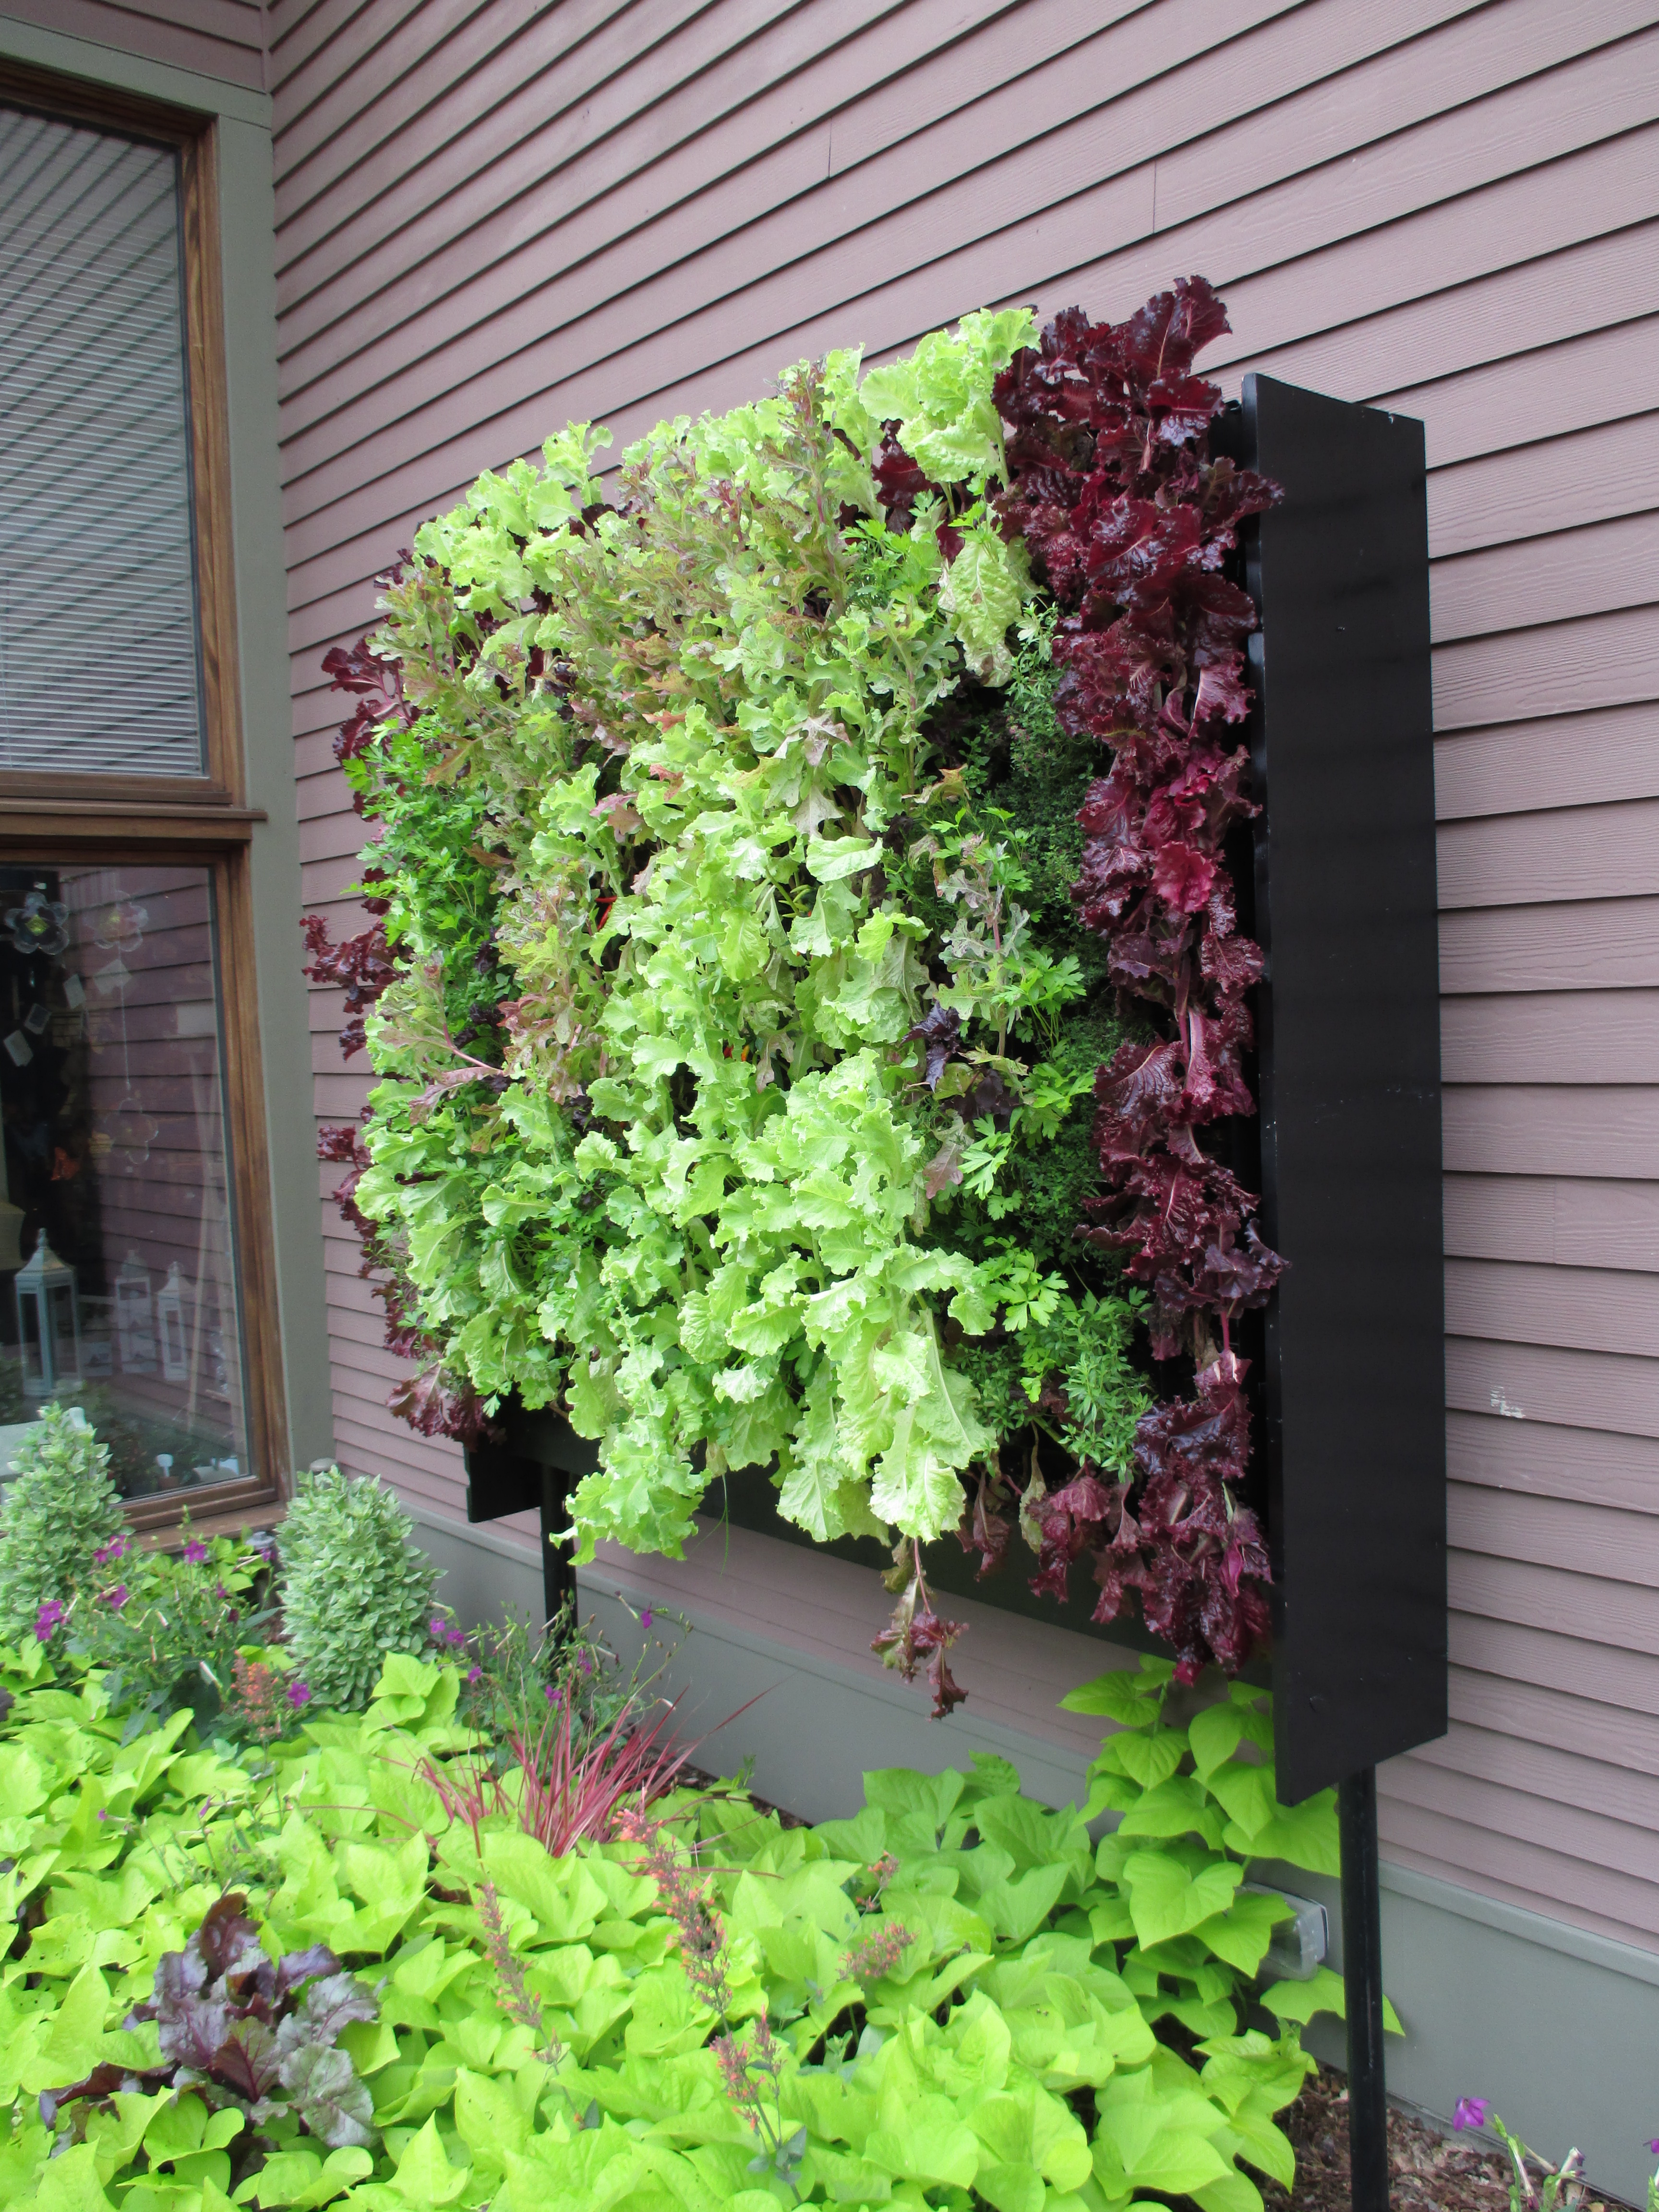 double duty a vegetable garden that looks as good as it tastes uconnladybug 39 s blog. Black Bedroom Furniture Sets. Home Design Ideas